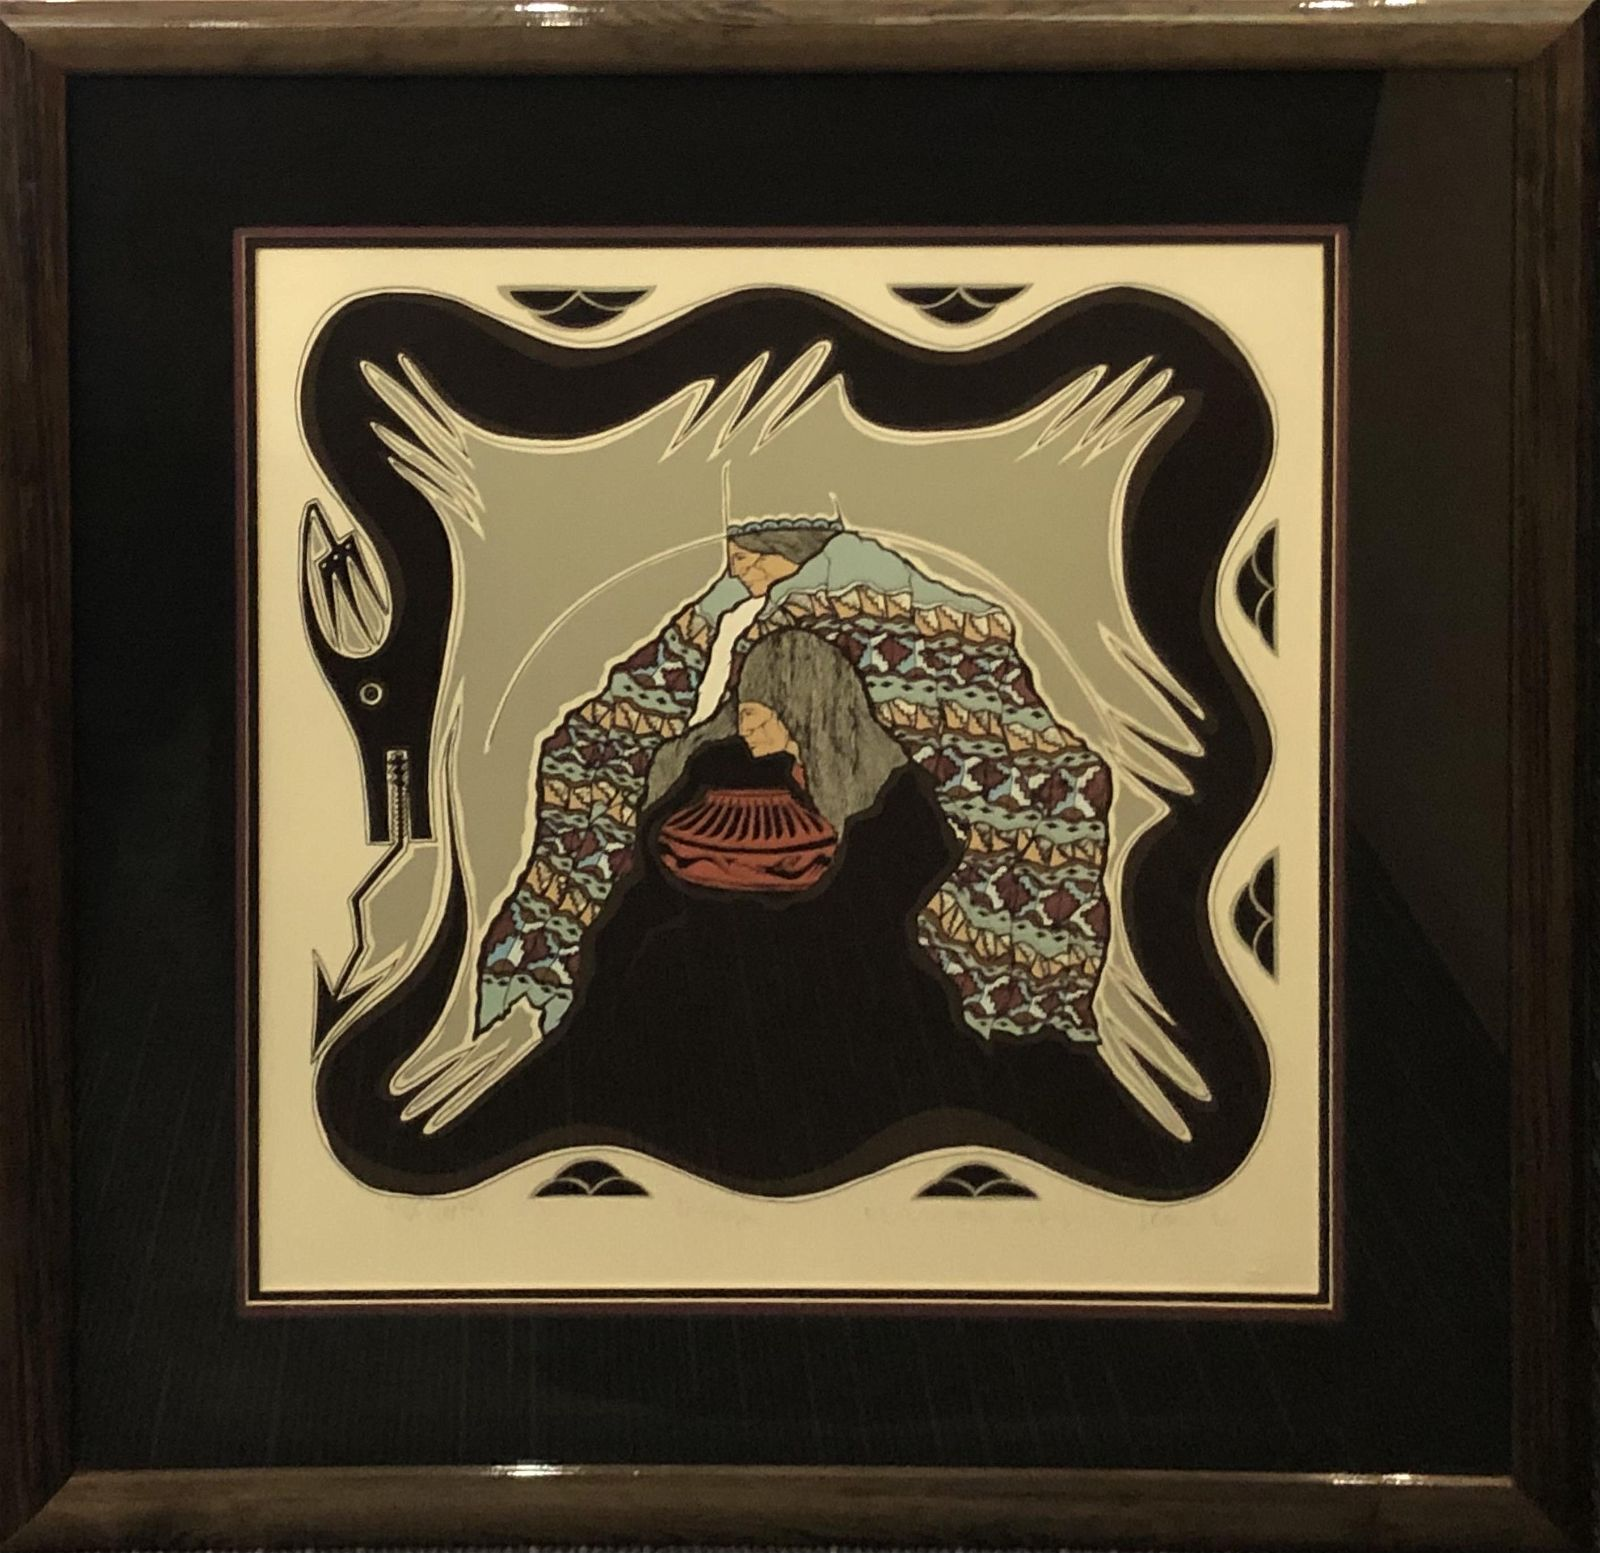 Amado Pena (Unknown) Signed Lithograph